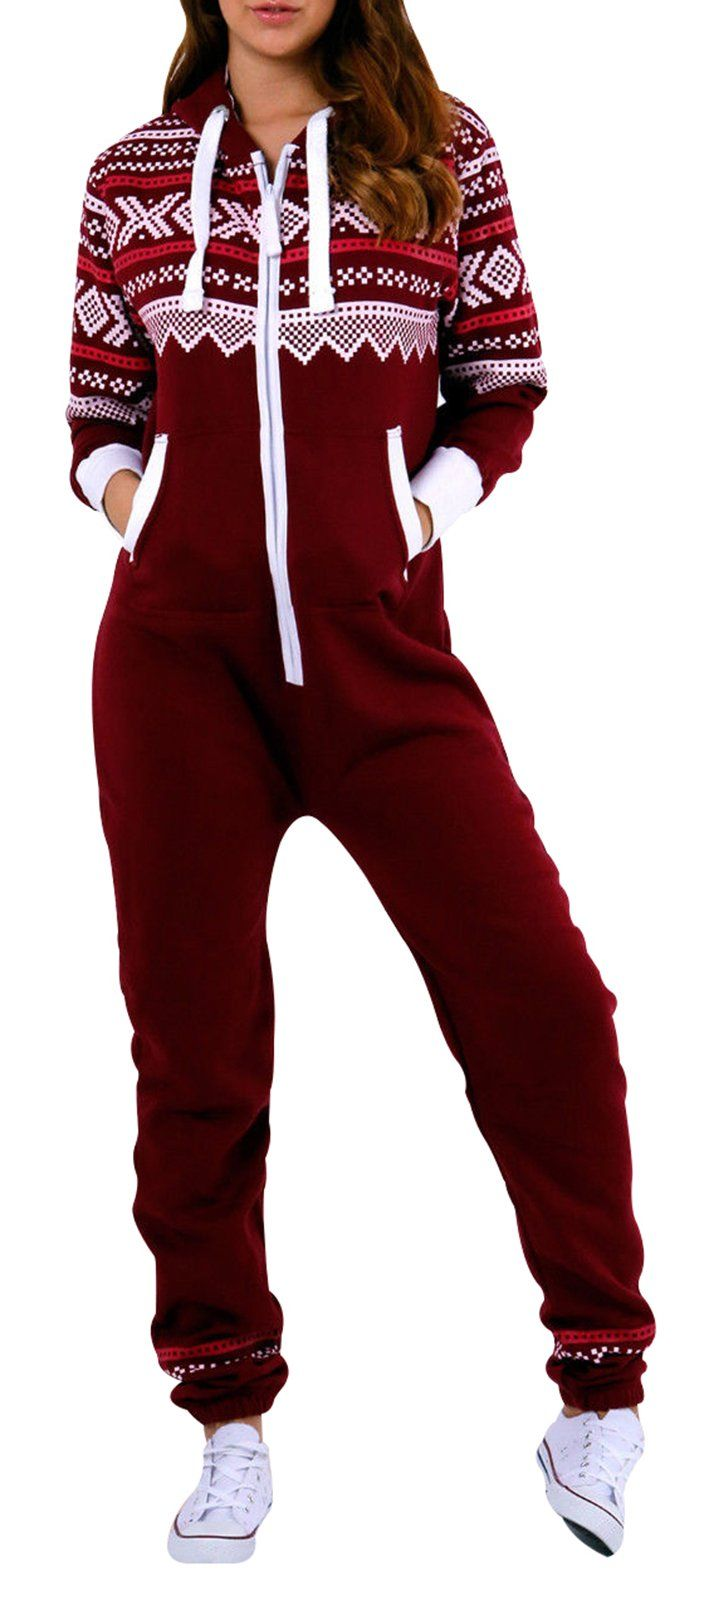 SkylineWears Women's Onesie Fashion Printed Playsuit Ladies Jumpsuit Large Burgundy